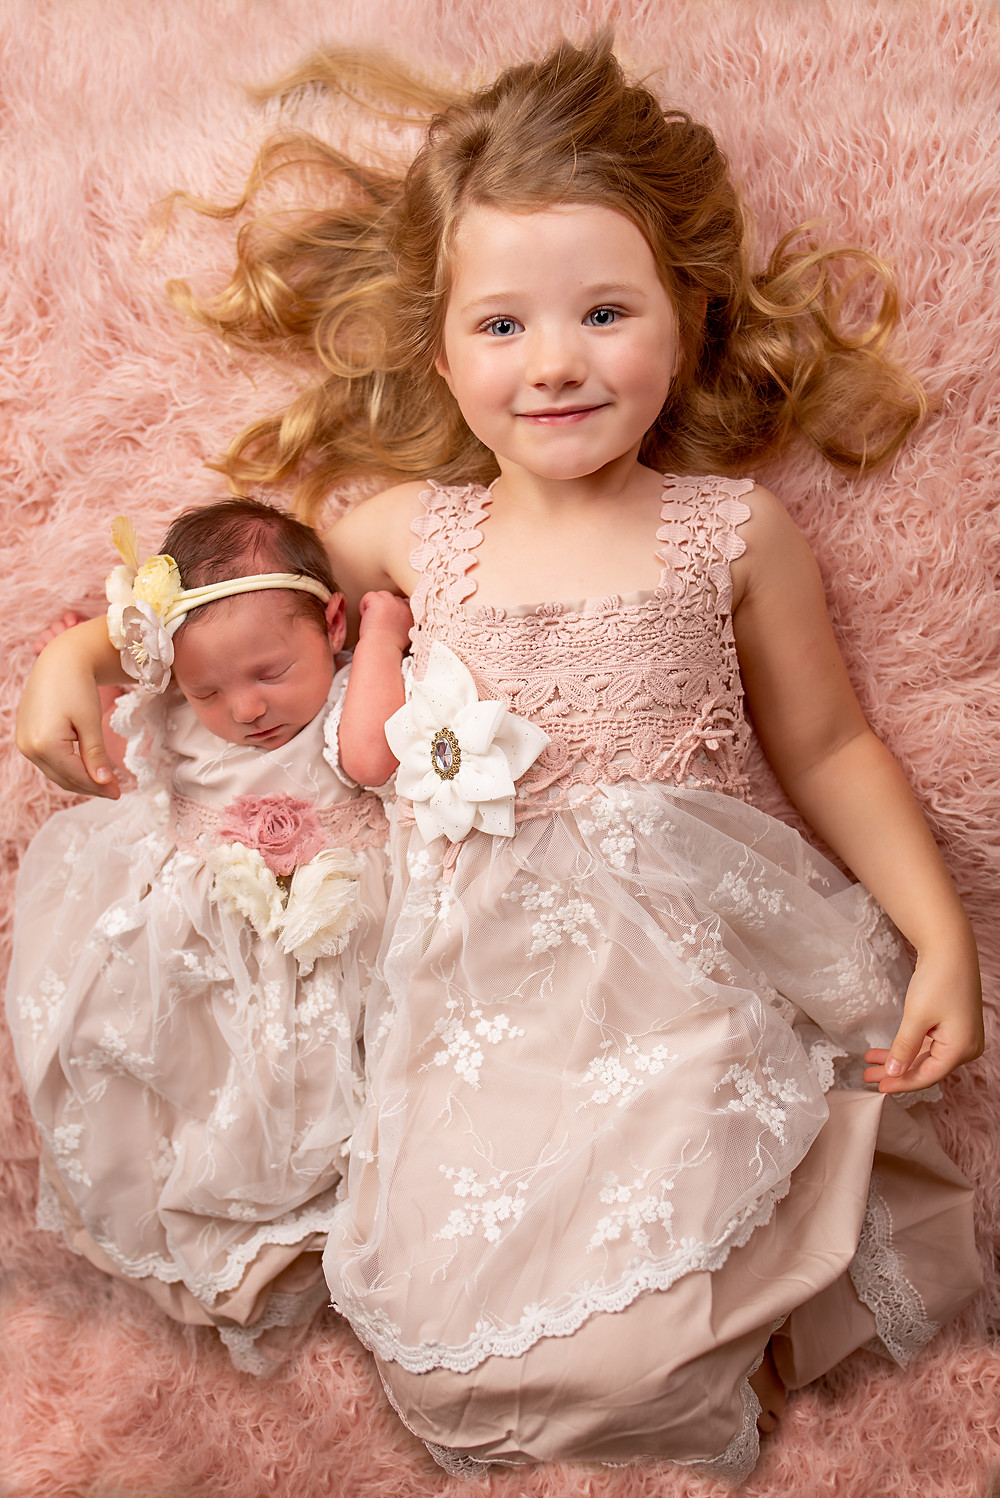 Best newborn photographer in Overland Park specializes in sibling photography